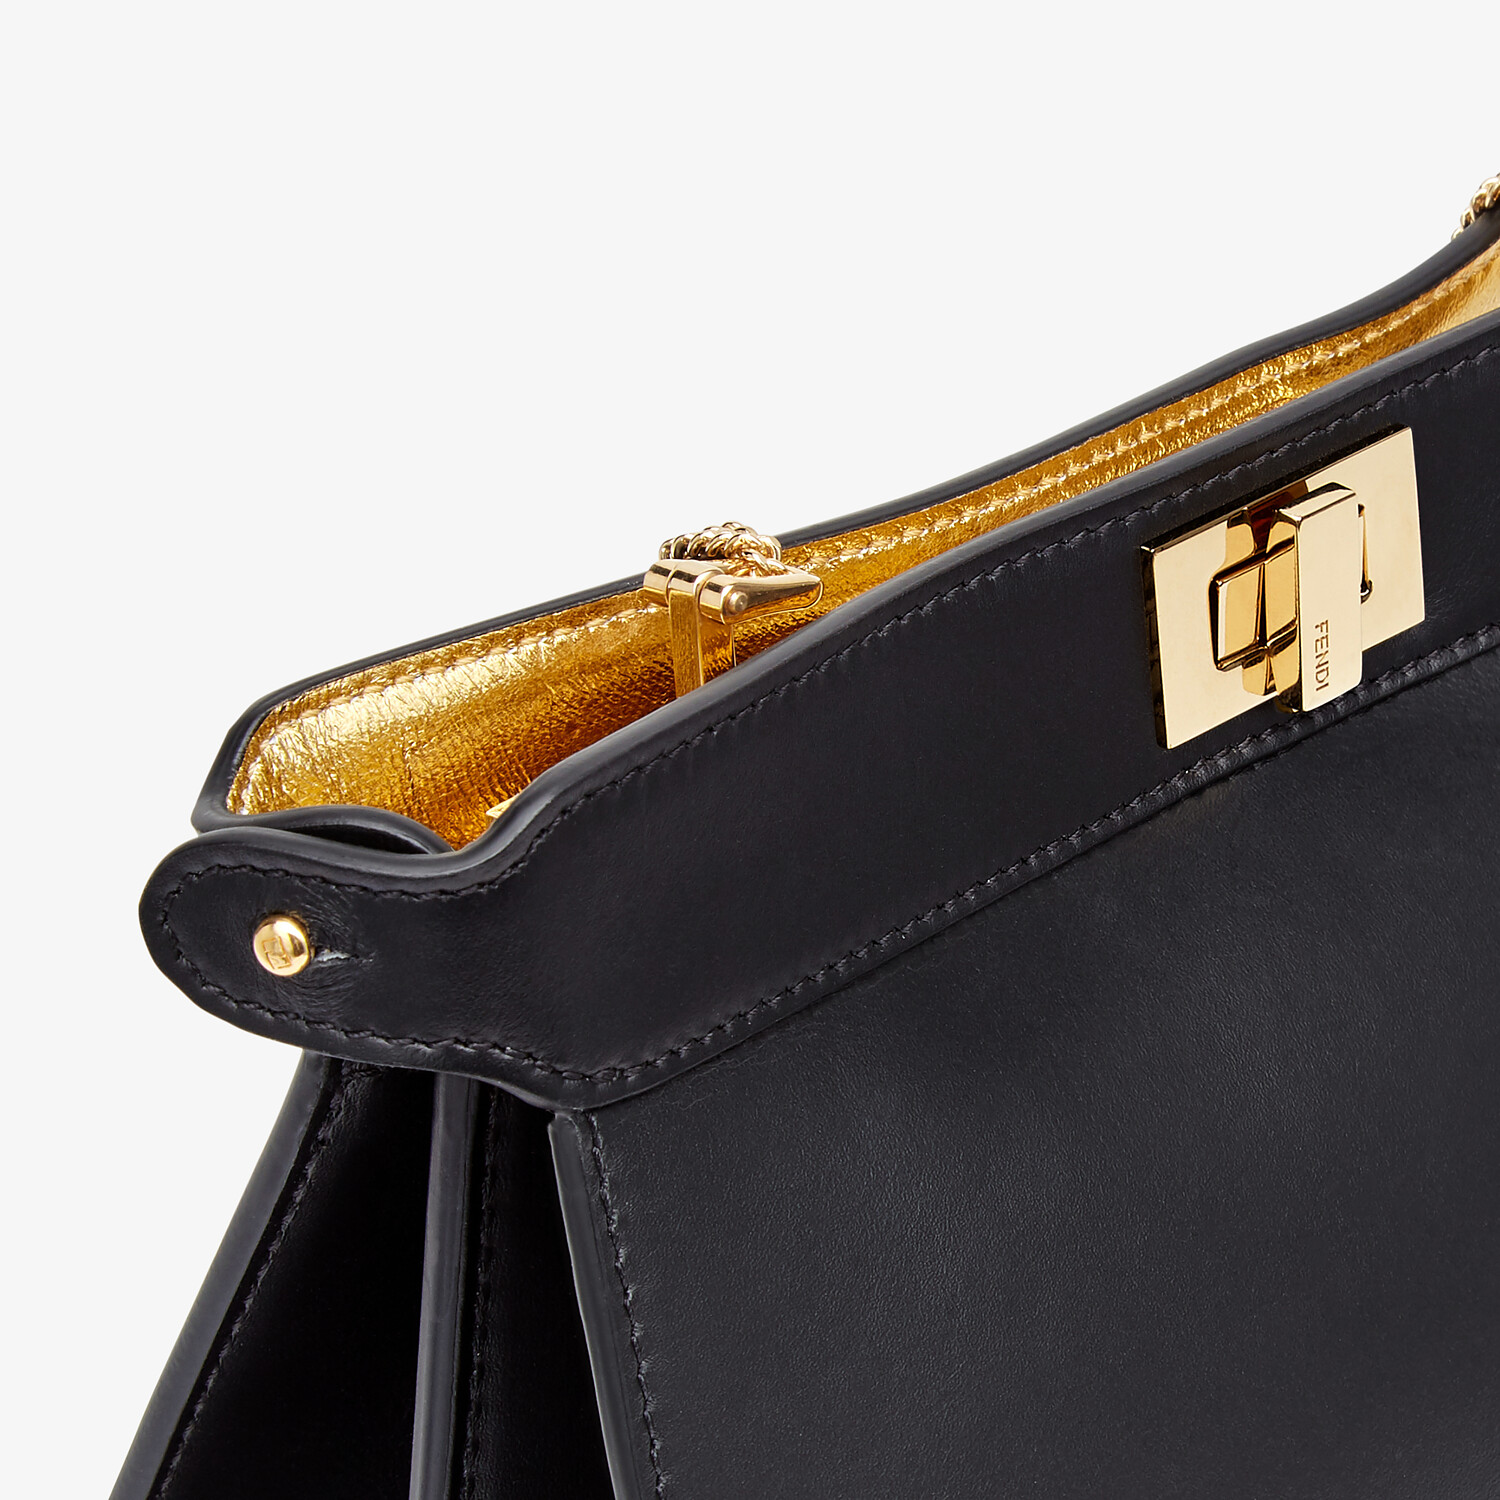 FENDI PEEKABOO I SEE U POCHETTE - Black nappa leather bag - view 5 detail